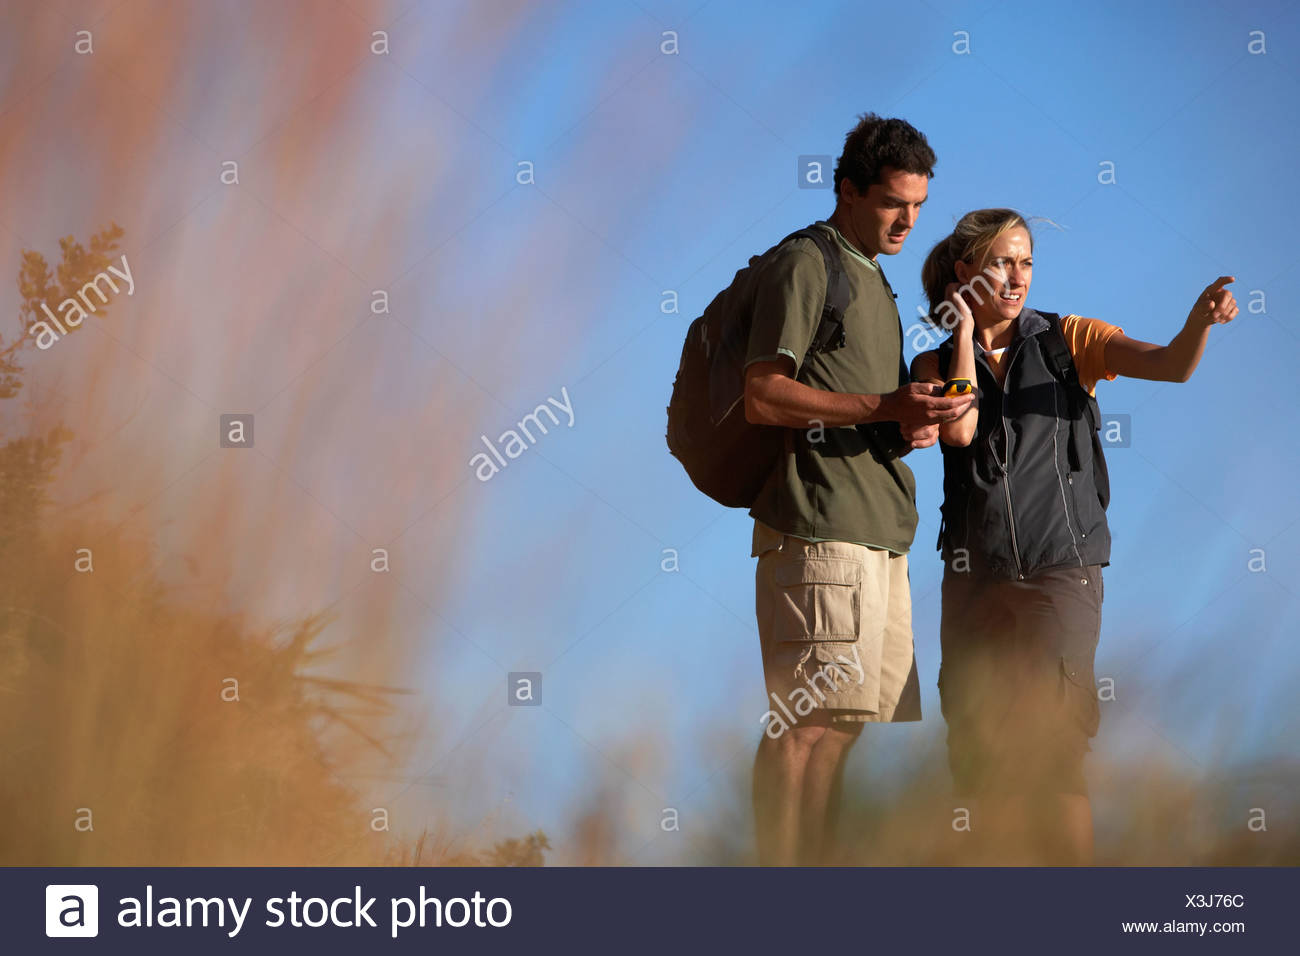 Couple hiking man holding navigation system woman pointing focus on background - Stock Image